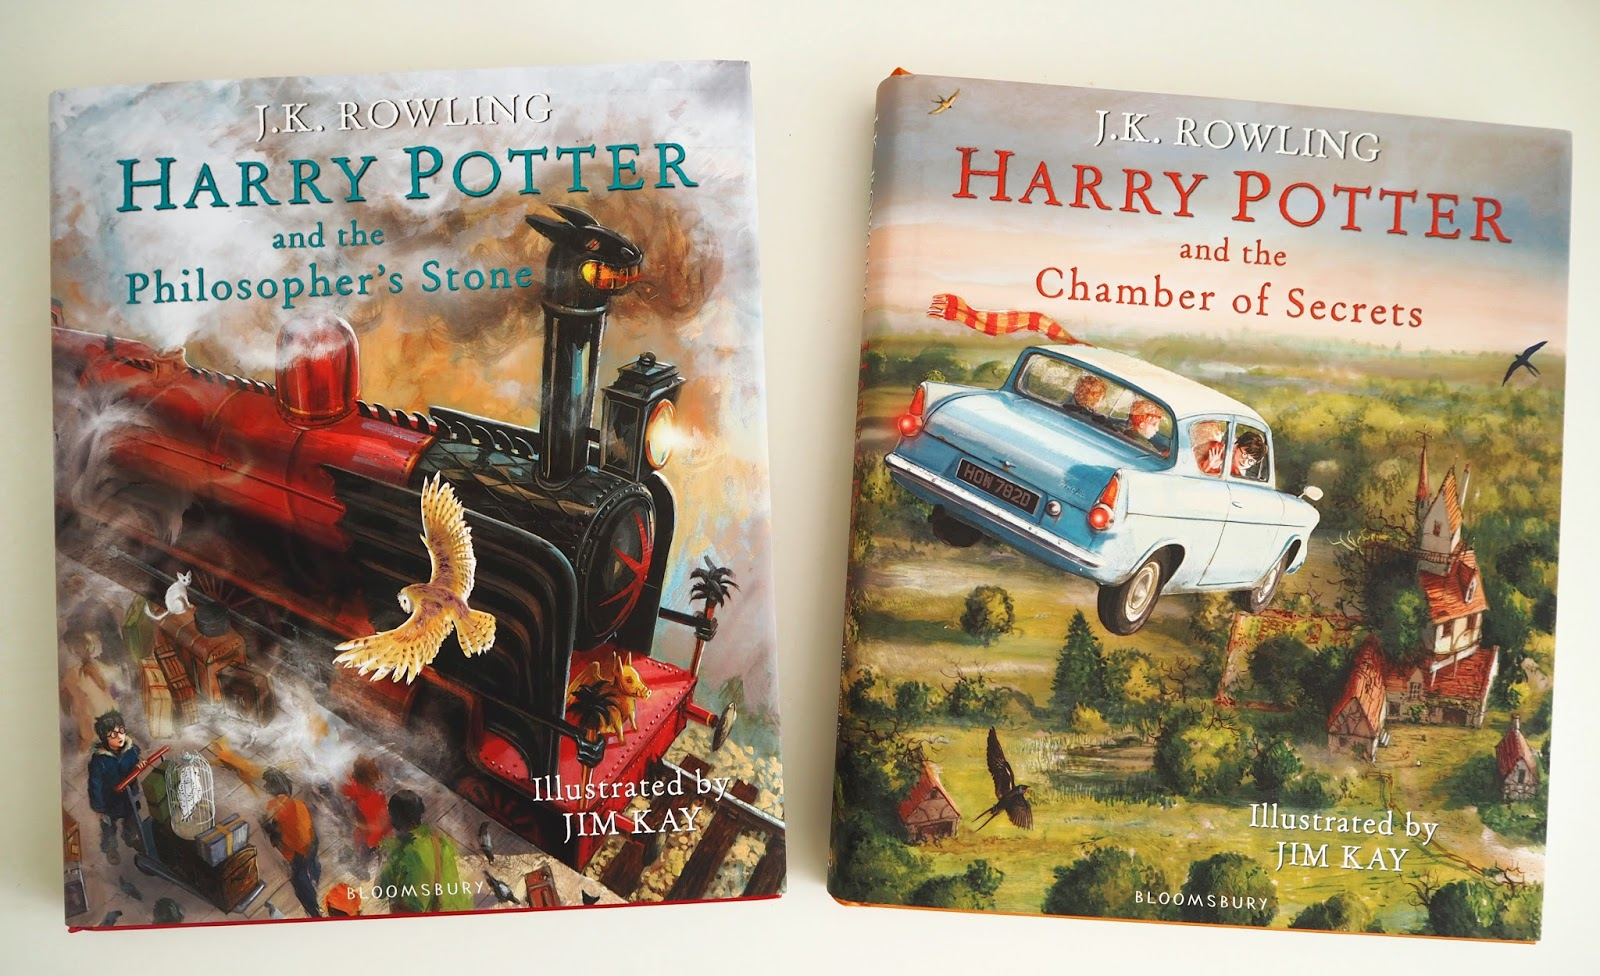 What I Got For Christmas 2016, Katie Kirk Loves, Harry Potter, Harry Potter Illustrated Books, Christmas Gifts, Christmas Presents, UK Blogger, Fashion Blogger, Beauty Blogger, Lifestyle Blogger, Present Haul